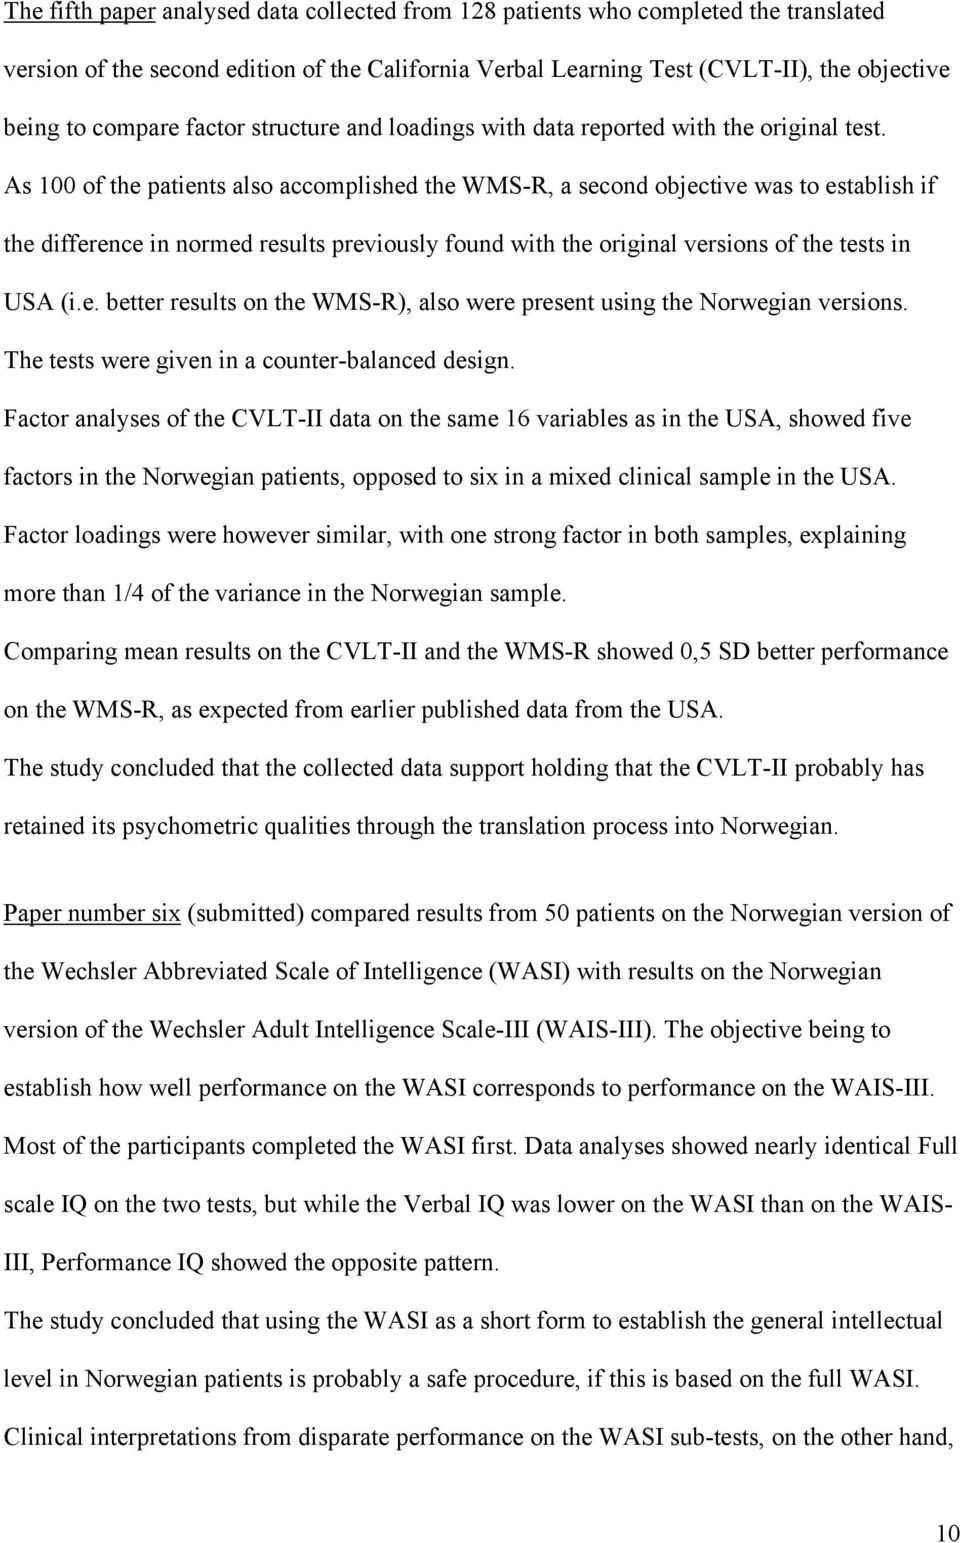 As 100 of the patients also accomplished the WMS-R, a second objective was to establish if the difference in normed results previously found with the original versions of the tests in USA (i.e. better results on the WMS-R), also were present using the Norwegian versions.